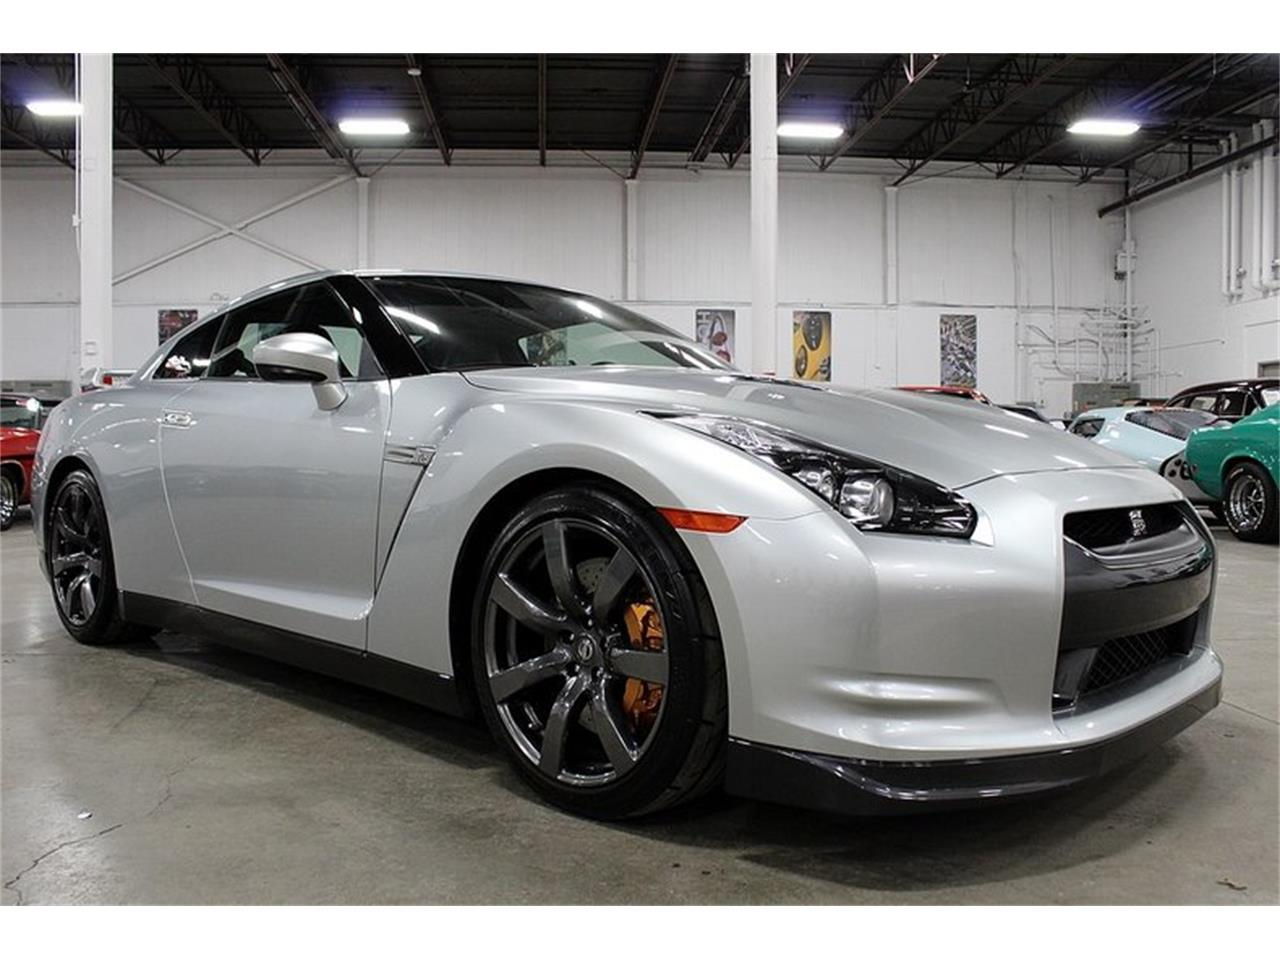 Large Picture of '09 Nissan GT-R located in Michigan - $59,900.00 - OIG1